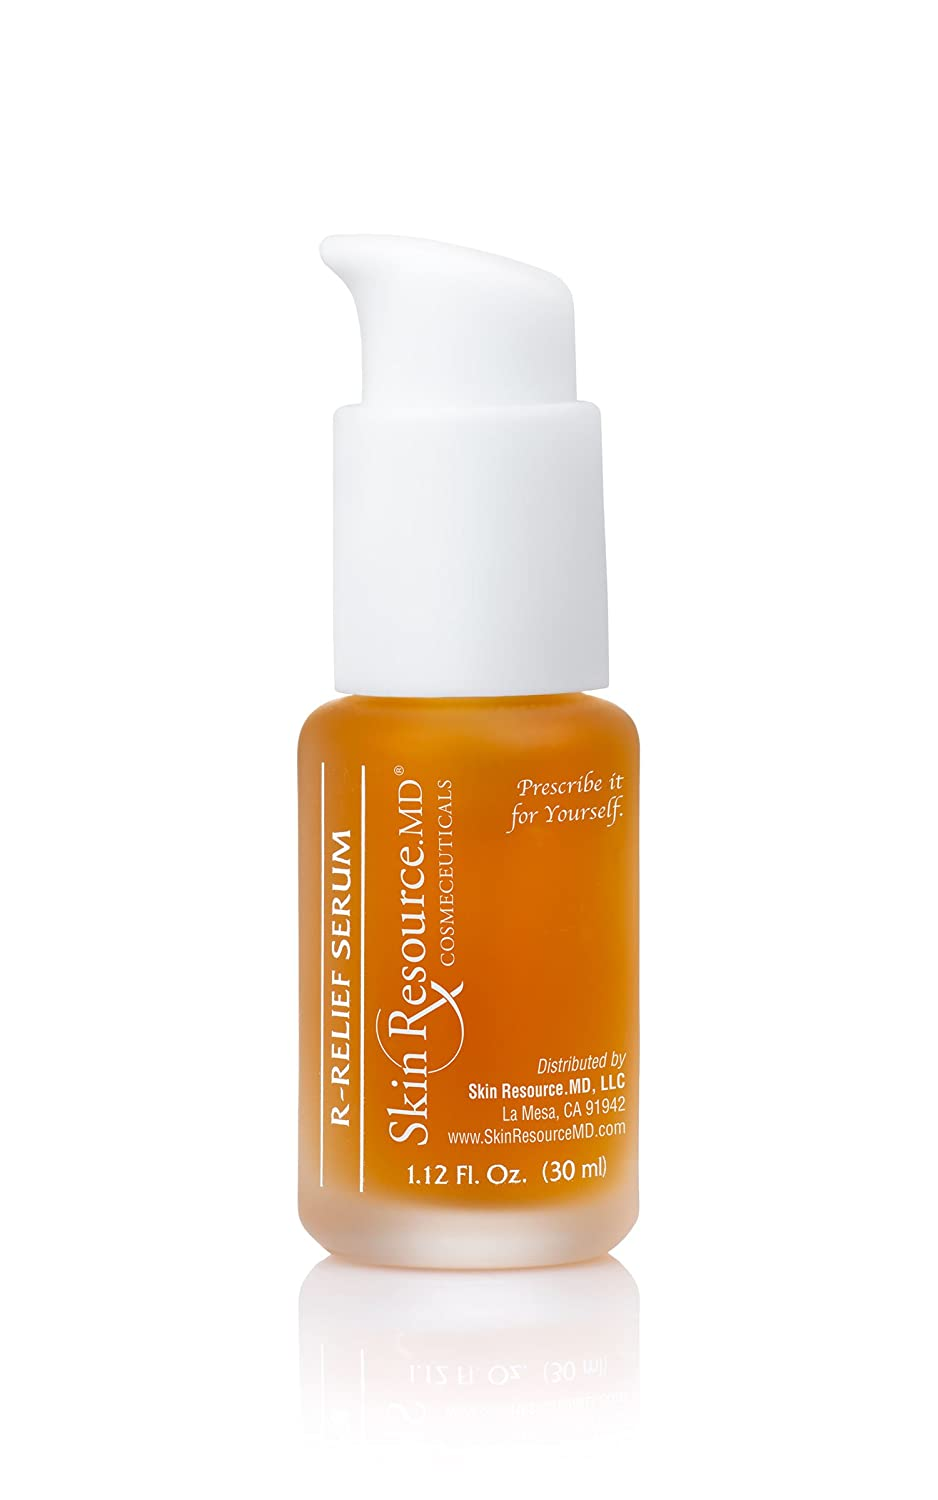 SkinResource.MD R-Relief Serum Visibly Reduce Signs of Chronic Redness and Rosacea -Prone Skin